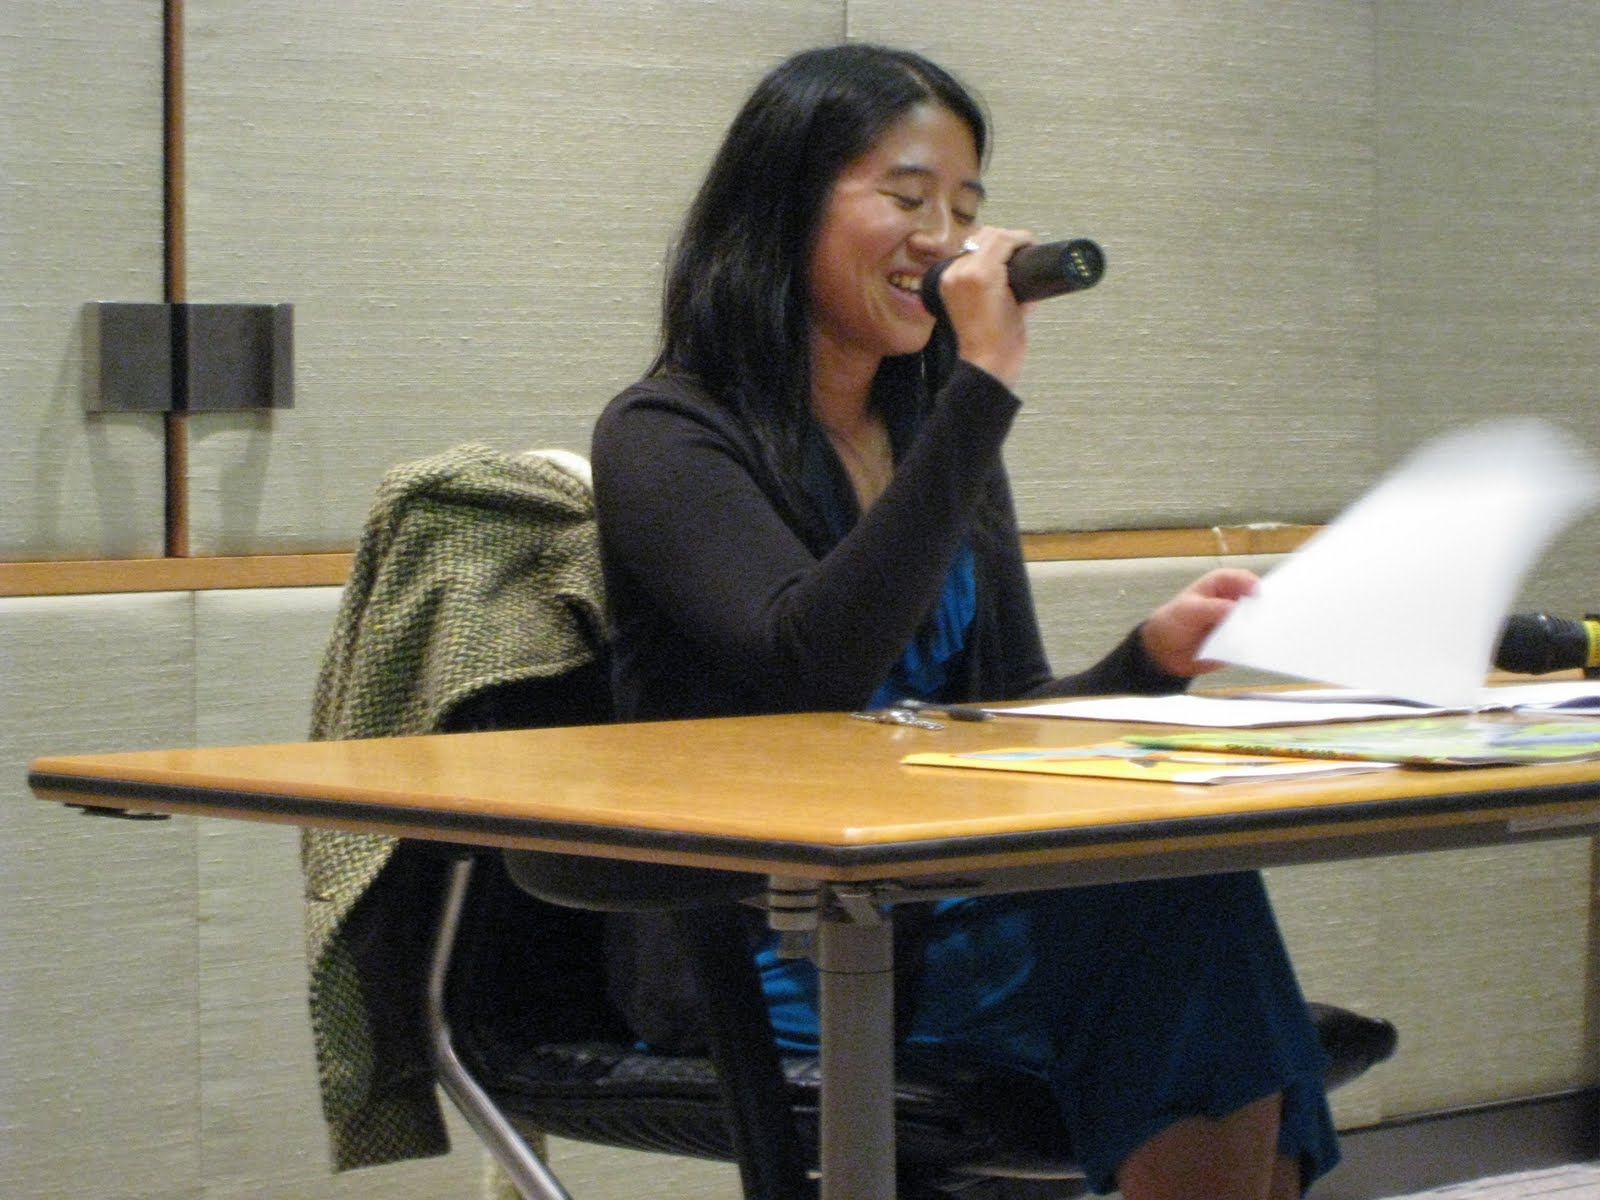 Alvina speaking at some conference or another…perhaps SCBWI.